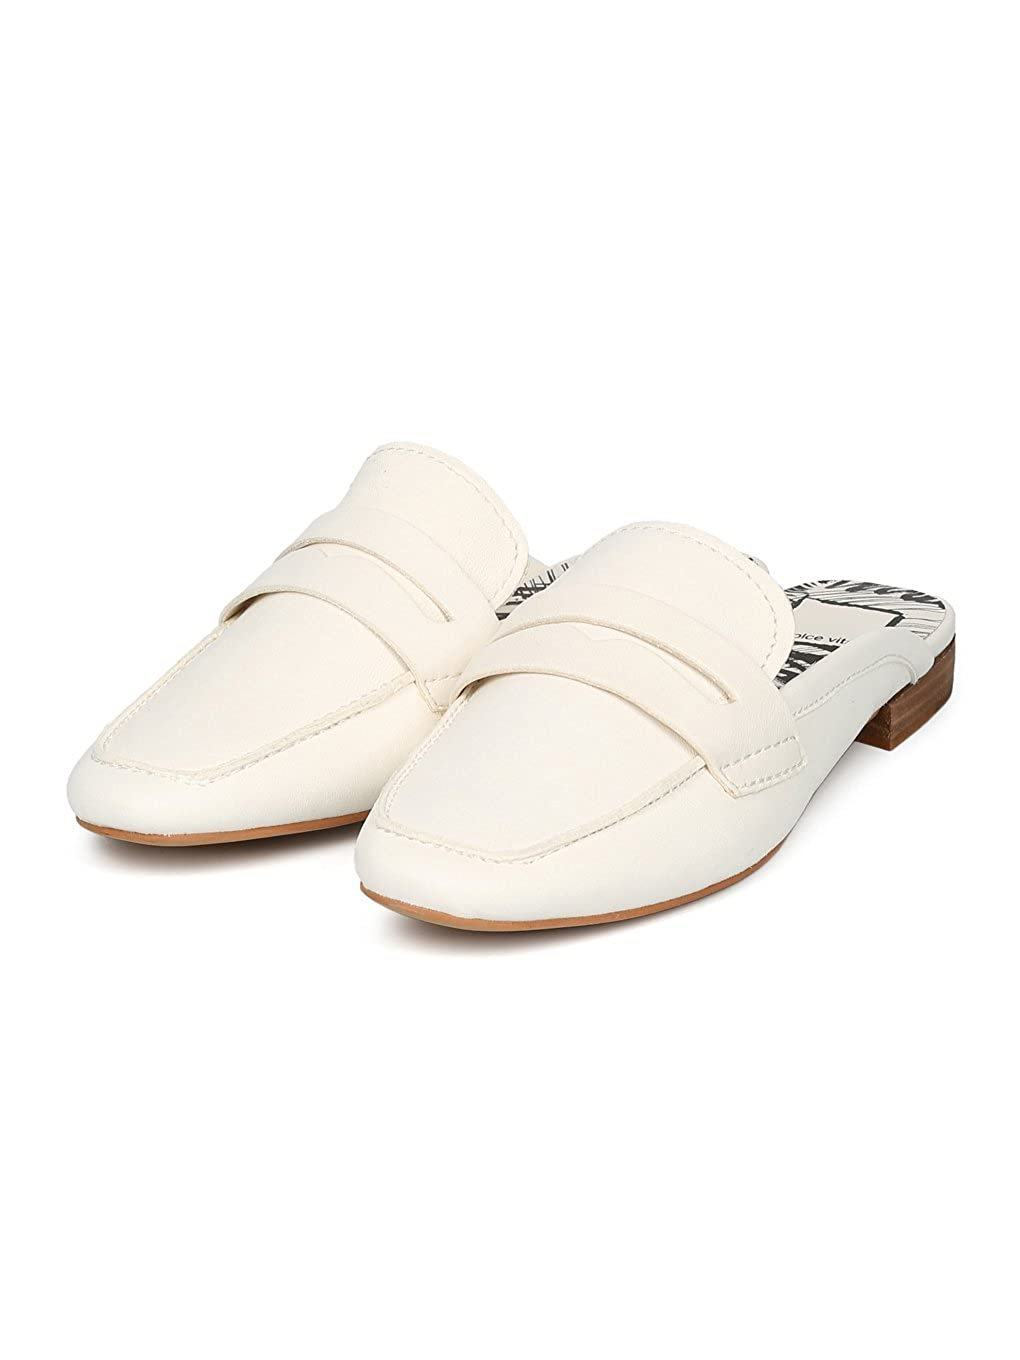 3bf94e6865b Amazon.com  Dolce Vita Cybil Square Moc Toe Loafer Mule Slide HC56 - Off  White Leather (Size  6.5)  Shoes